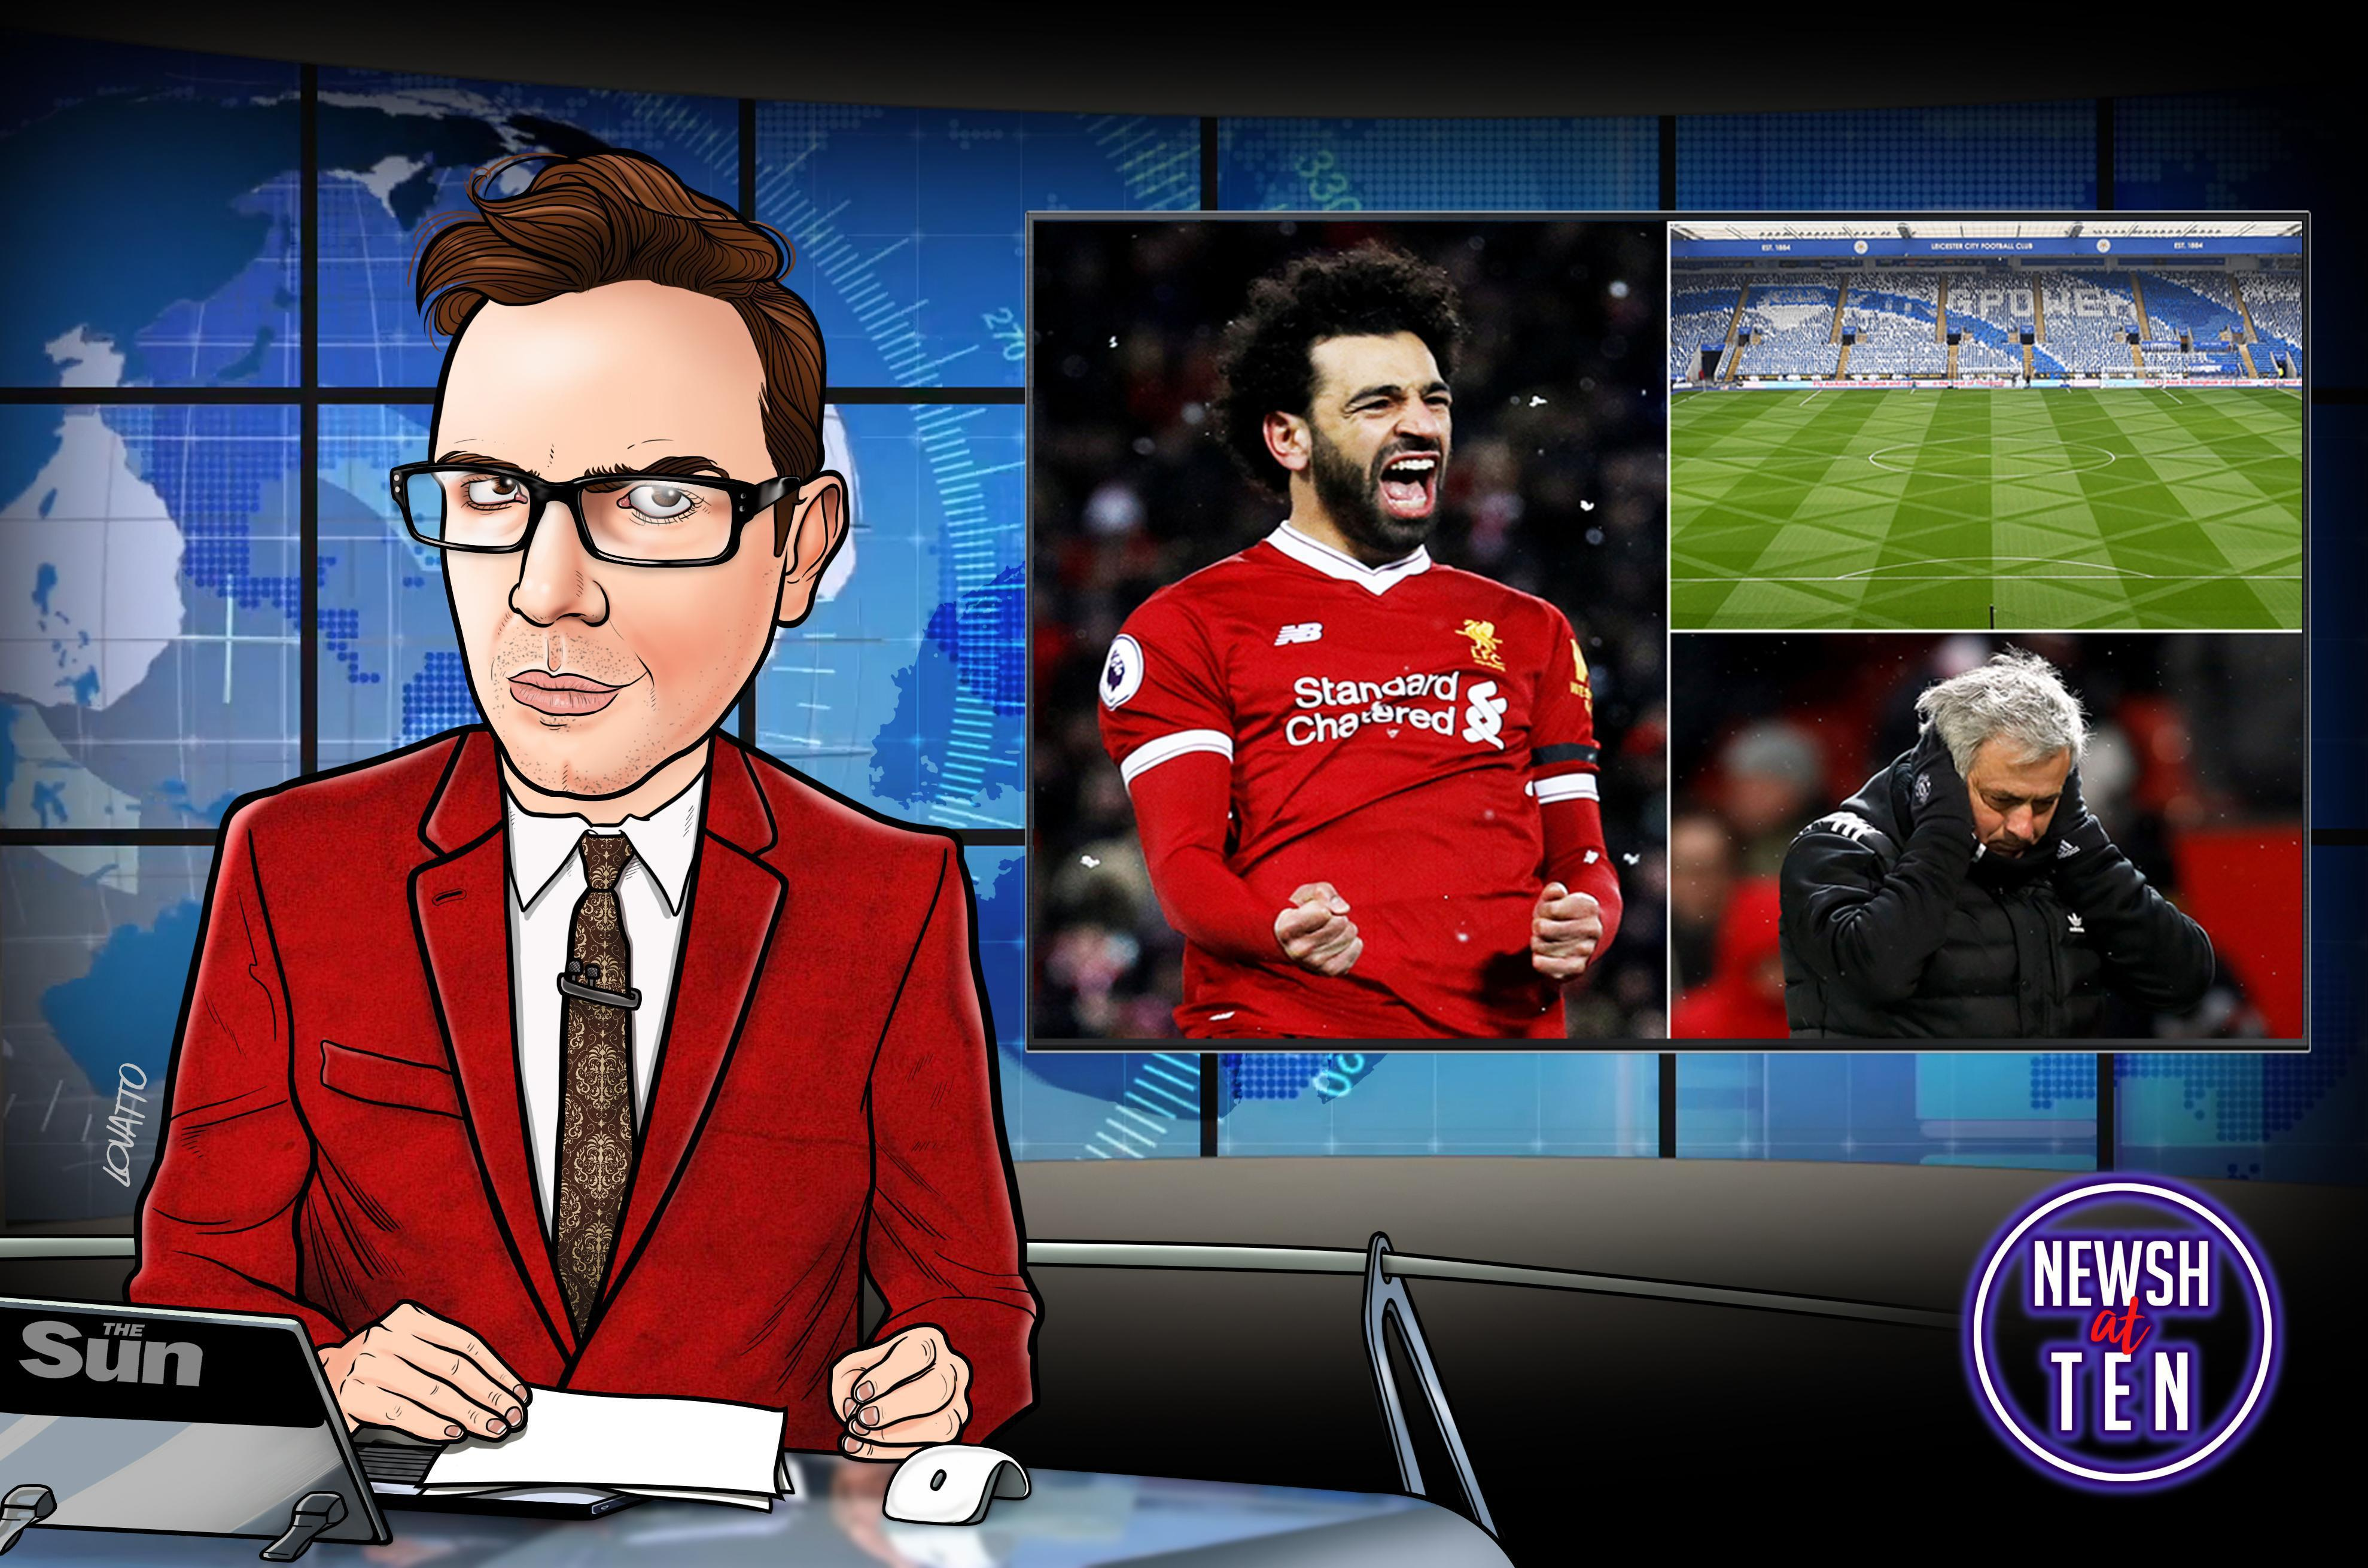 Manchester United library, Mo Salah the miracle man and life's a pitch at Leicester: the Premier League weekend exposed